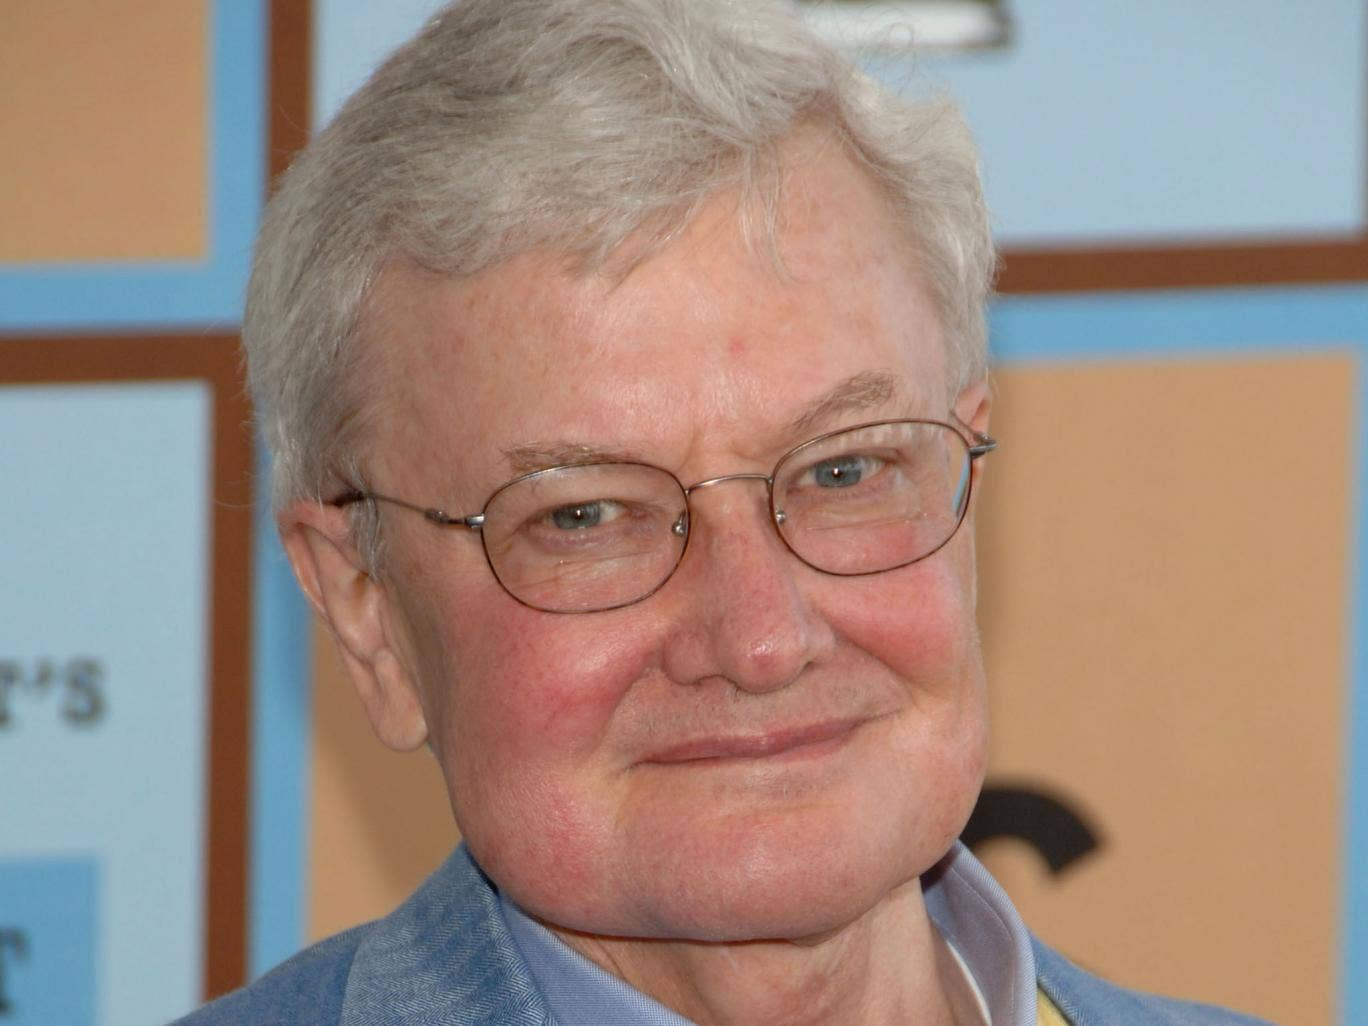 Roger Ebert, one of the most popular film reviewers of his time, has died at the age of 70